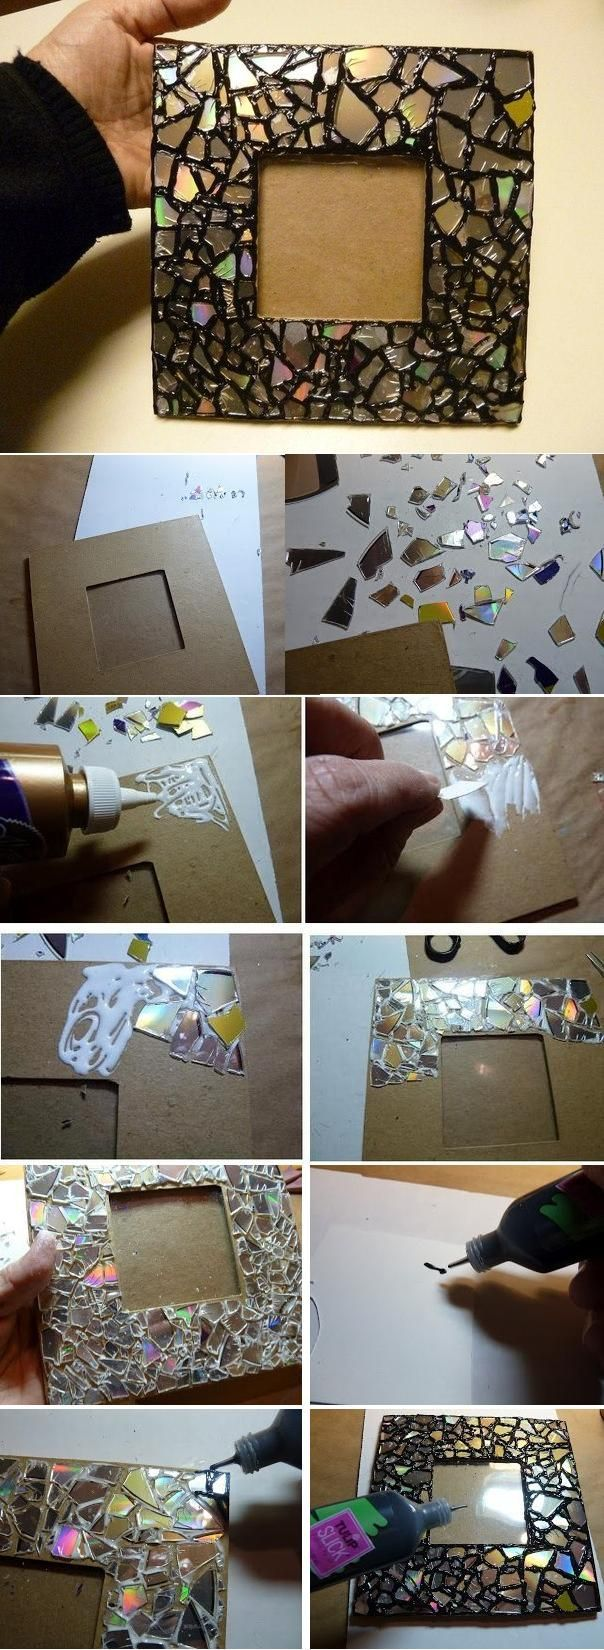 DIY Old CD Mosaic Mirror Frame (though I will probably never do this. I have other, better, uses for old CDs)